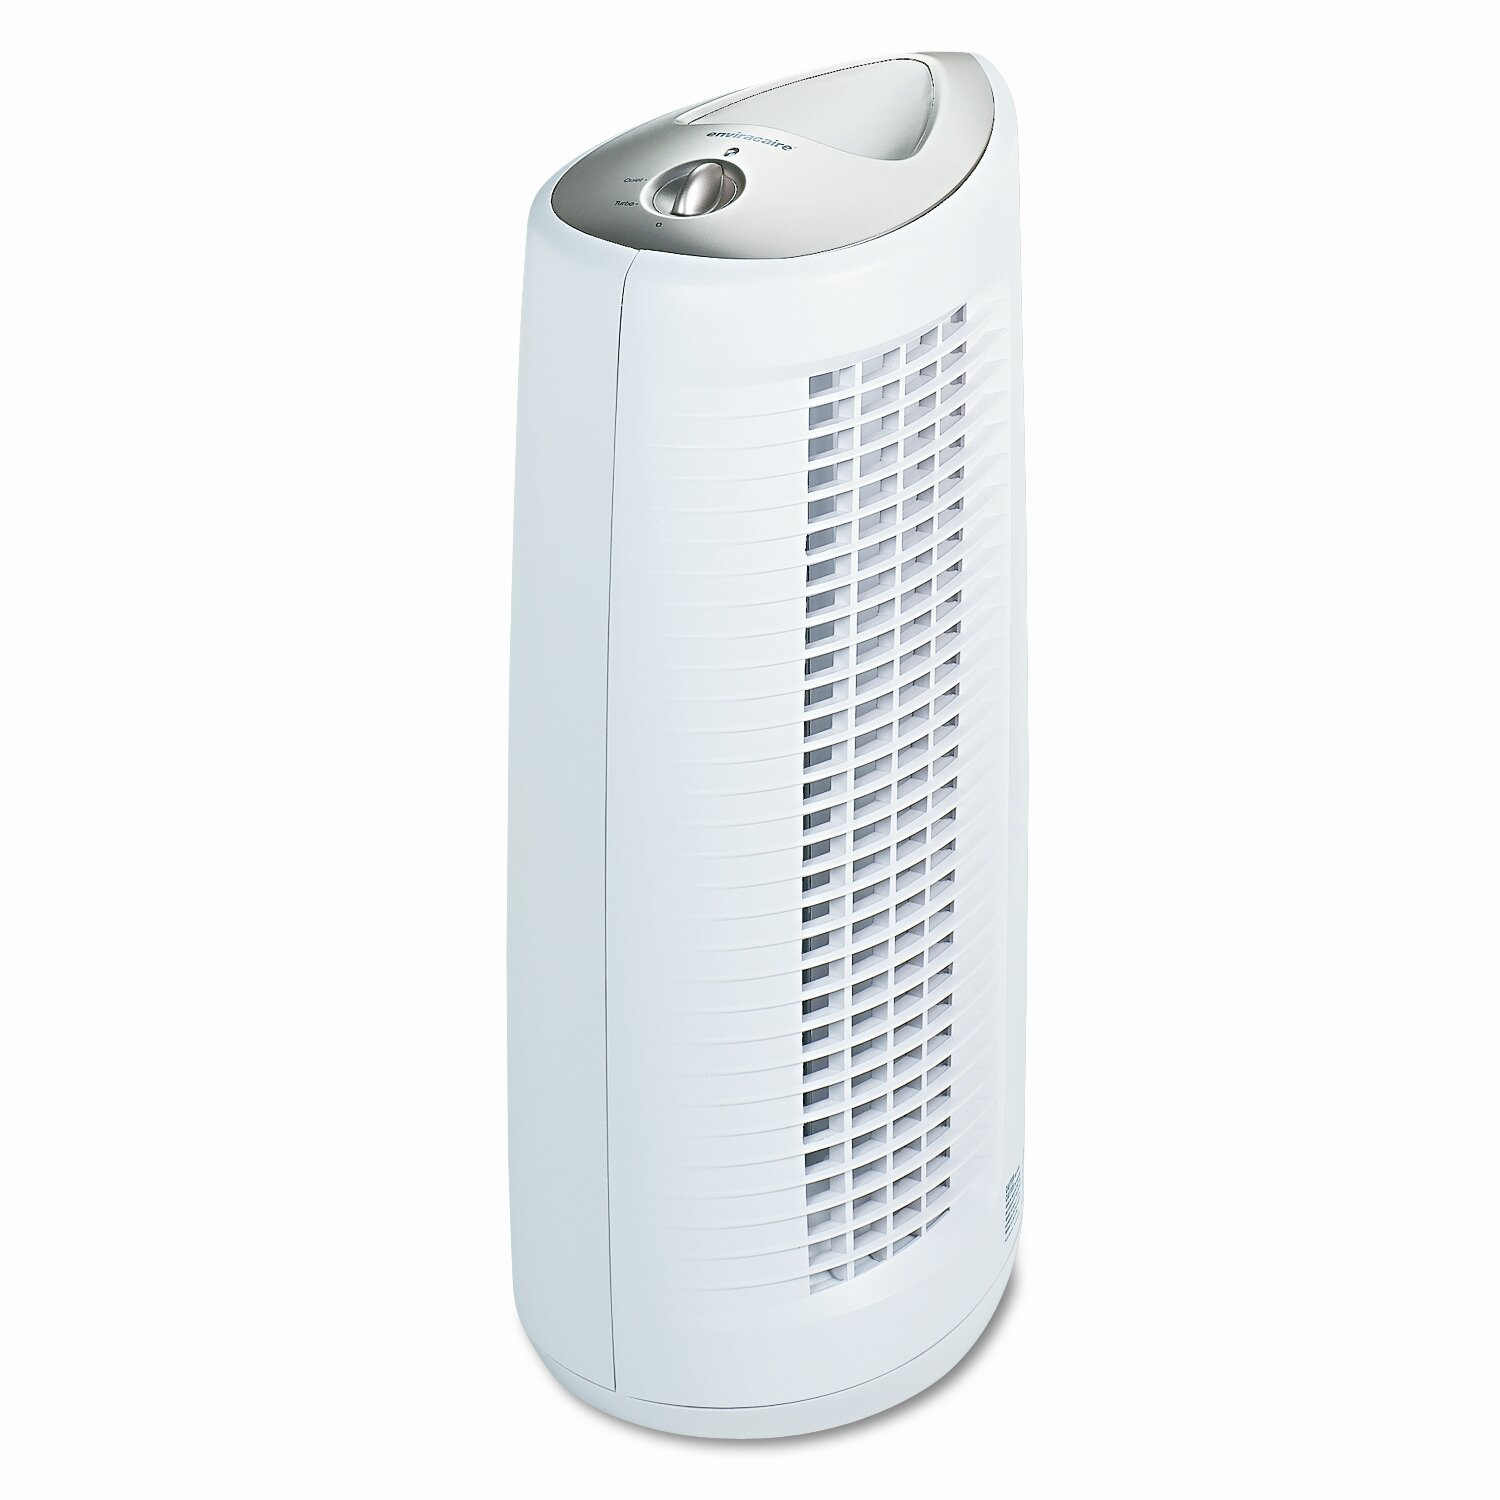 Honeywell quietclean room air purifier wayfair for Bedroom air purifier